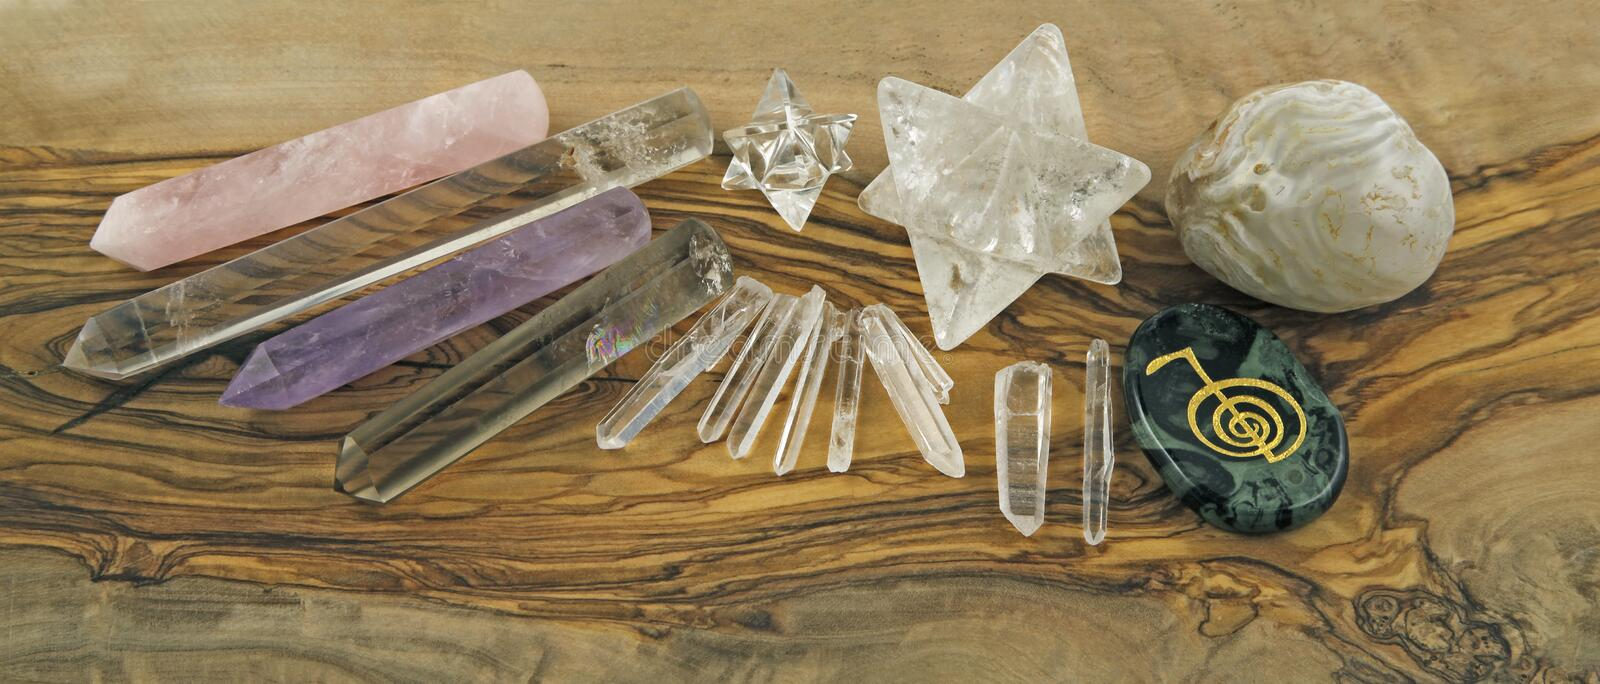 Selection of Crystal healer's tools. Including small and large Merkabah, four crystals wands, agate, Reiki Symbol stone and terminated quartz on olive wood stock image